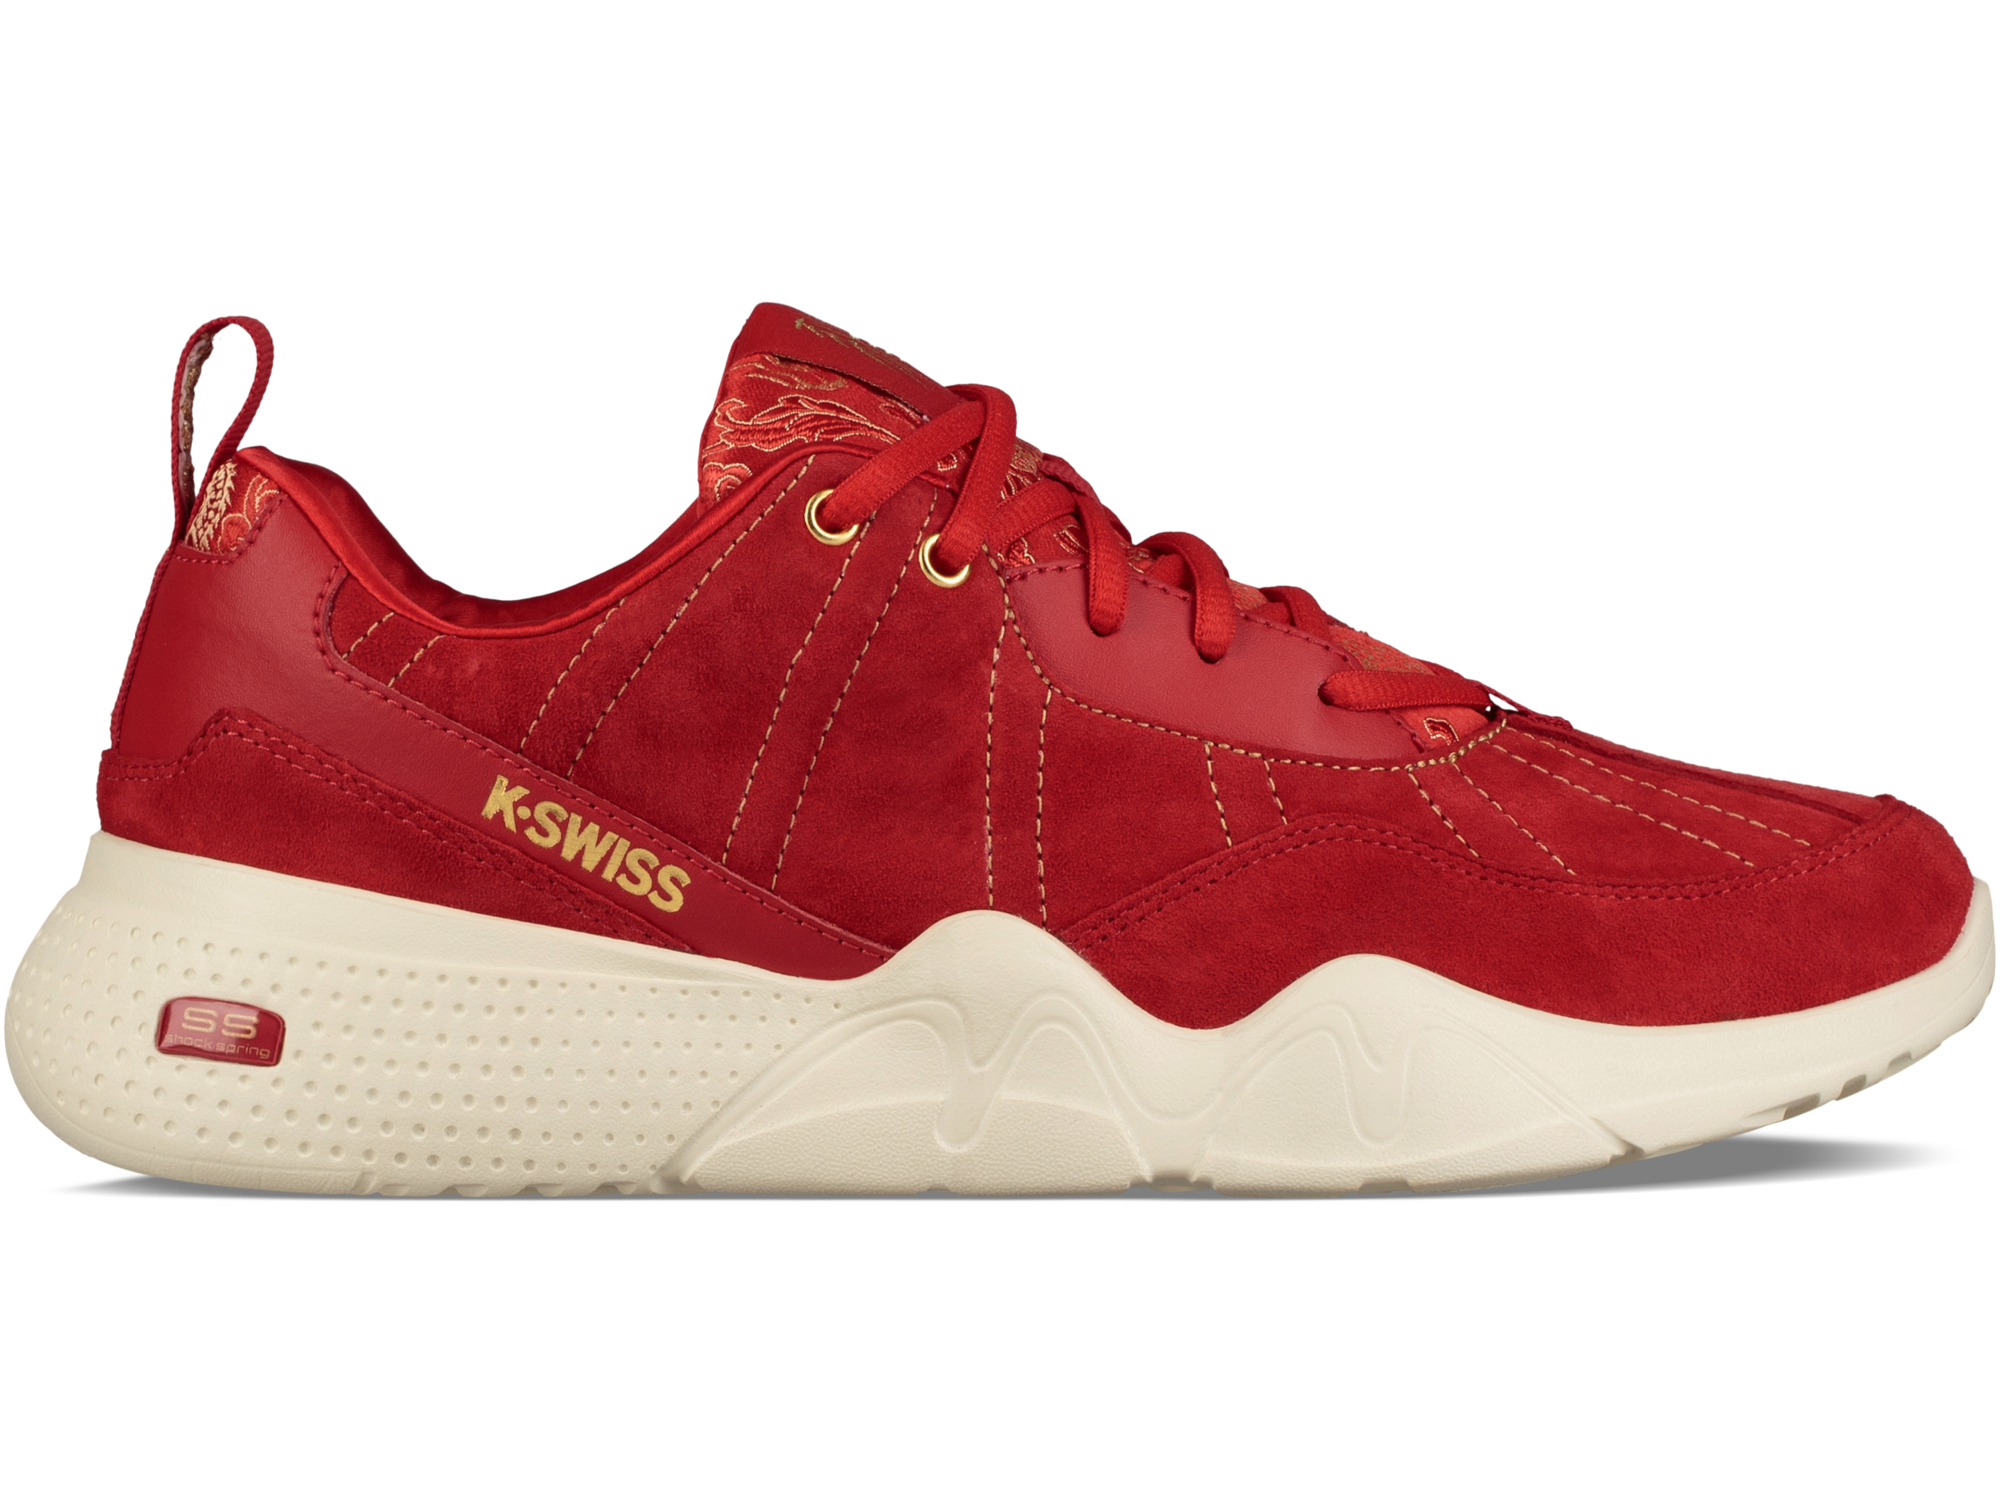 96517688M WOMEN'S CR329 CHINESE NEW YEAR RED/GOLD